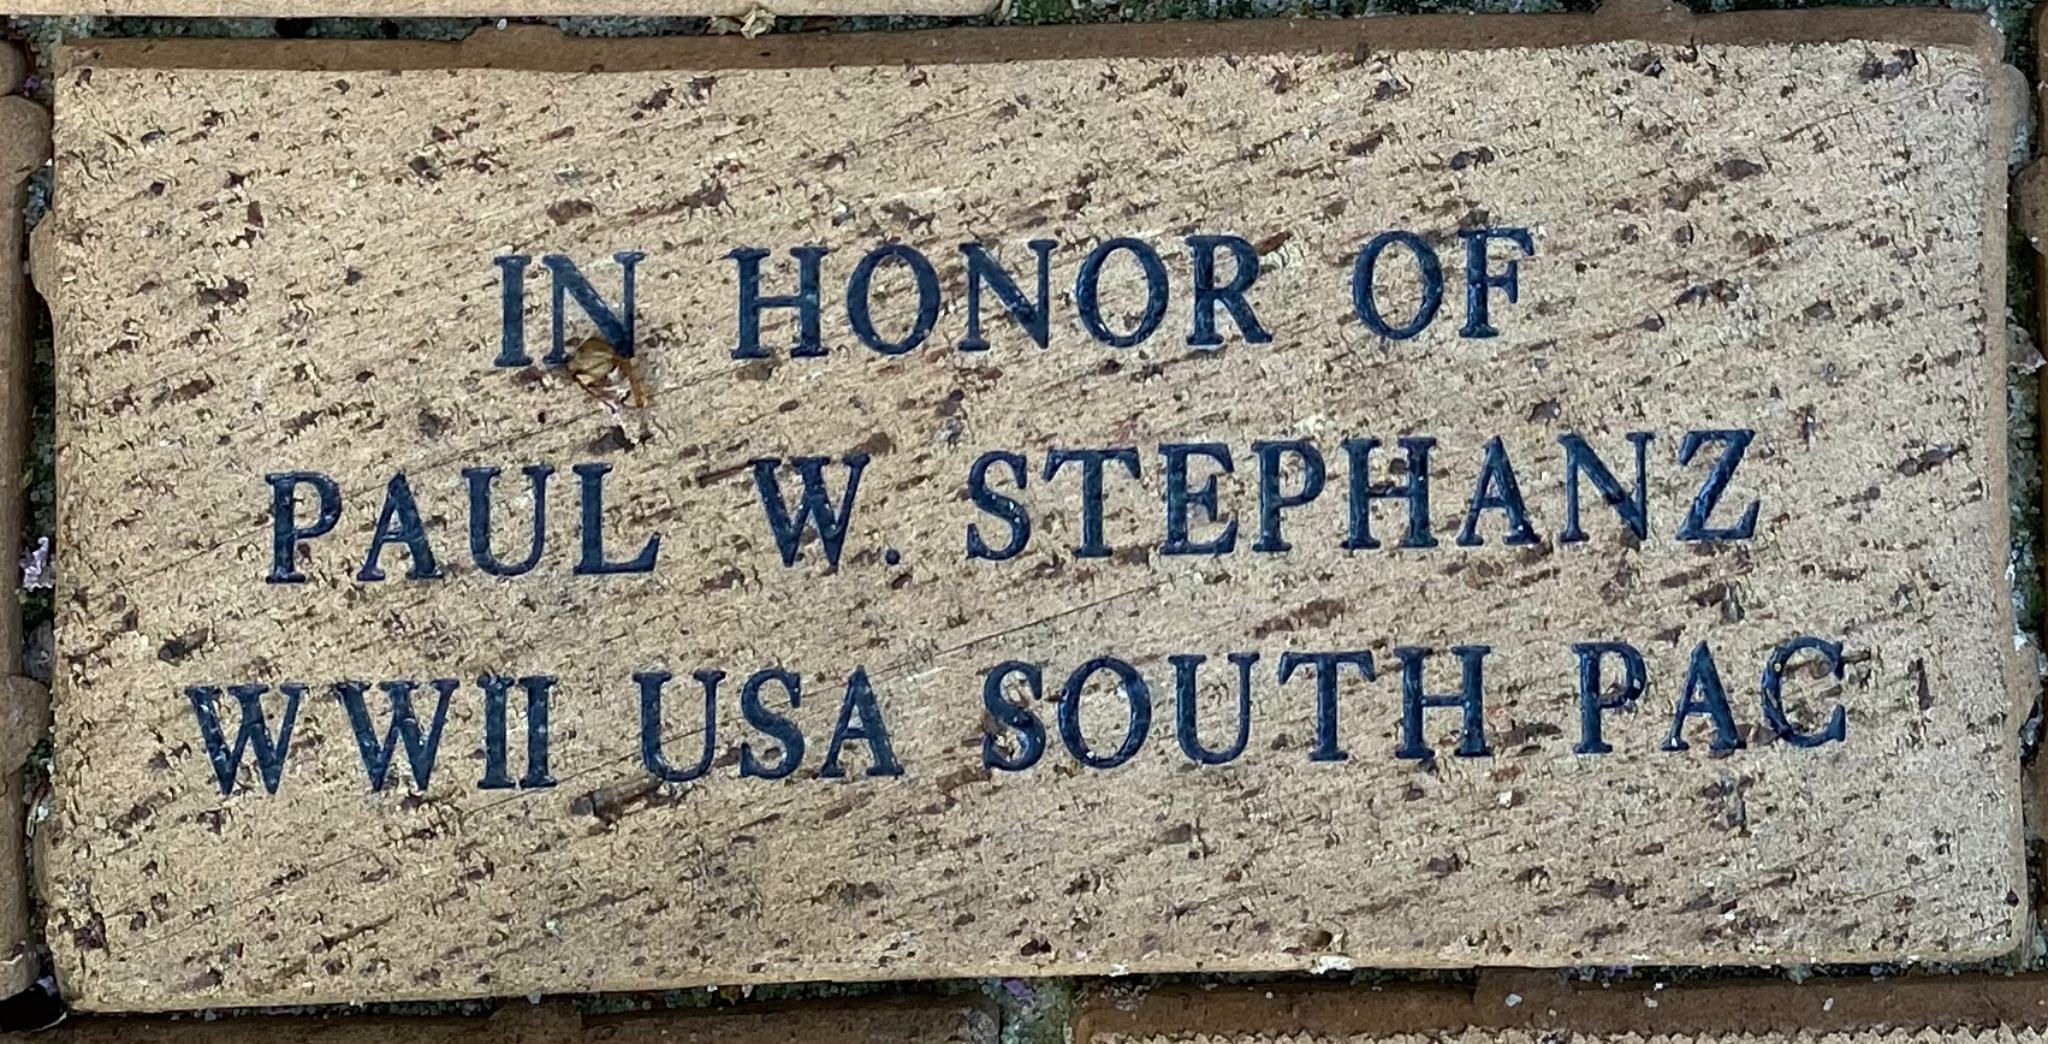 IN HONOR OF  PAUL W. STEPHANZ WWII USA SOUTH PAC